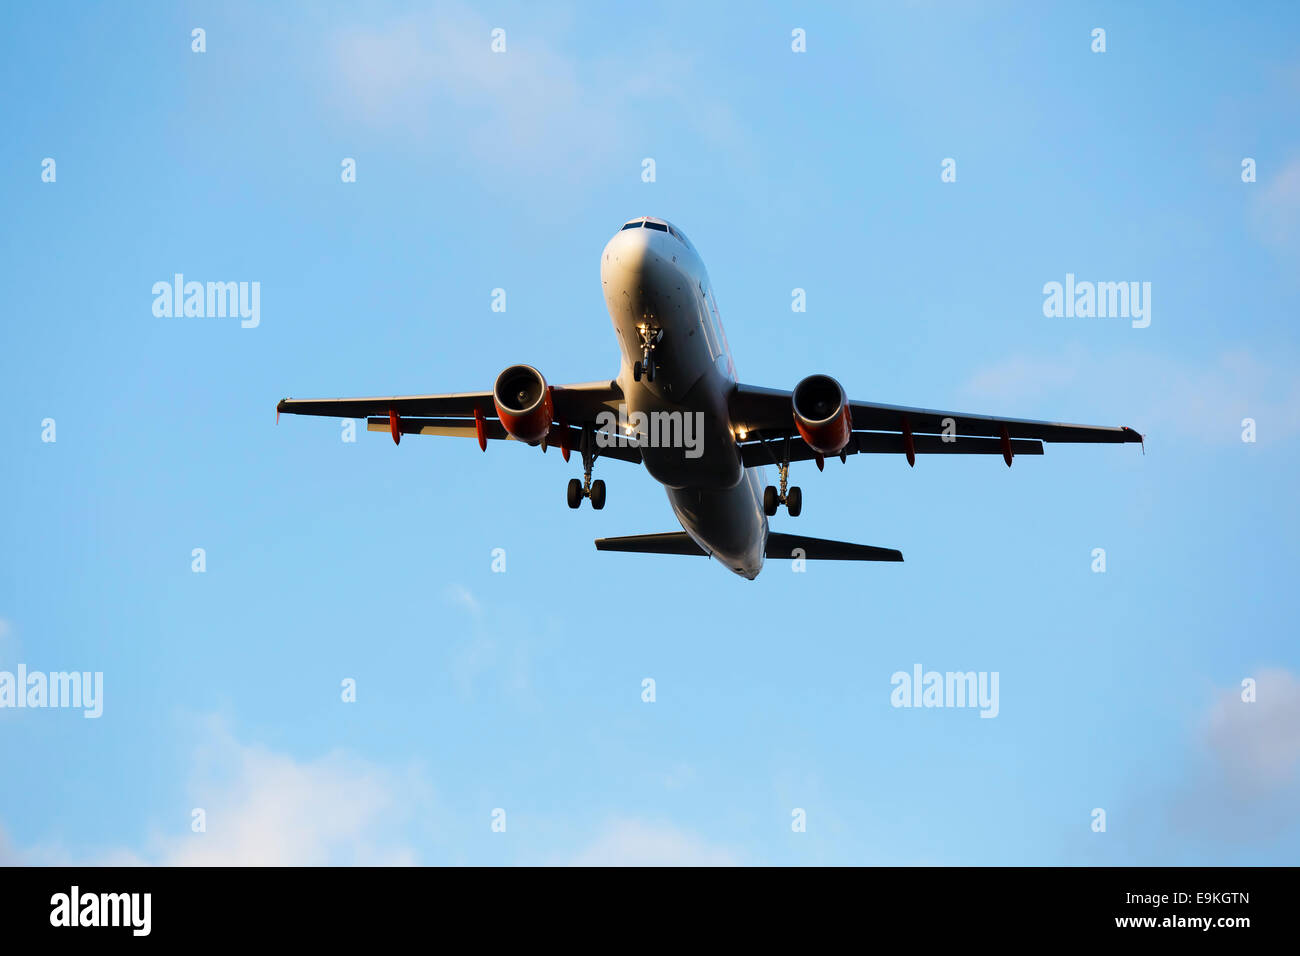 Airbus A320-214 G-EZTL Easyjet on approach to land at Manchester Airport - Stock Image